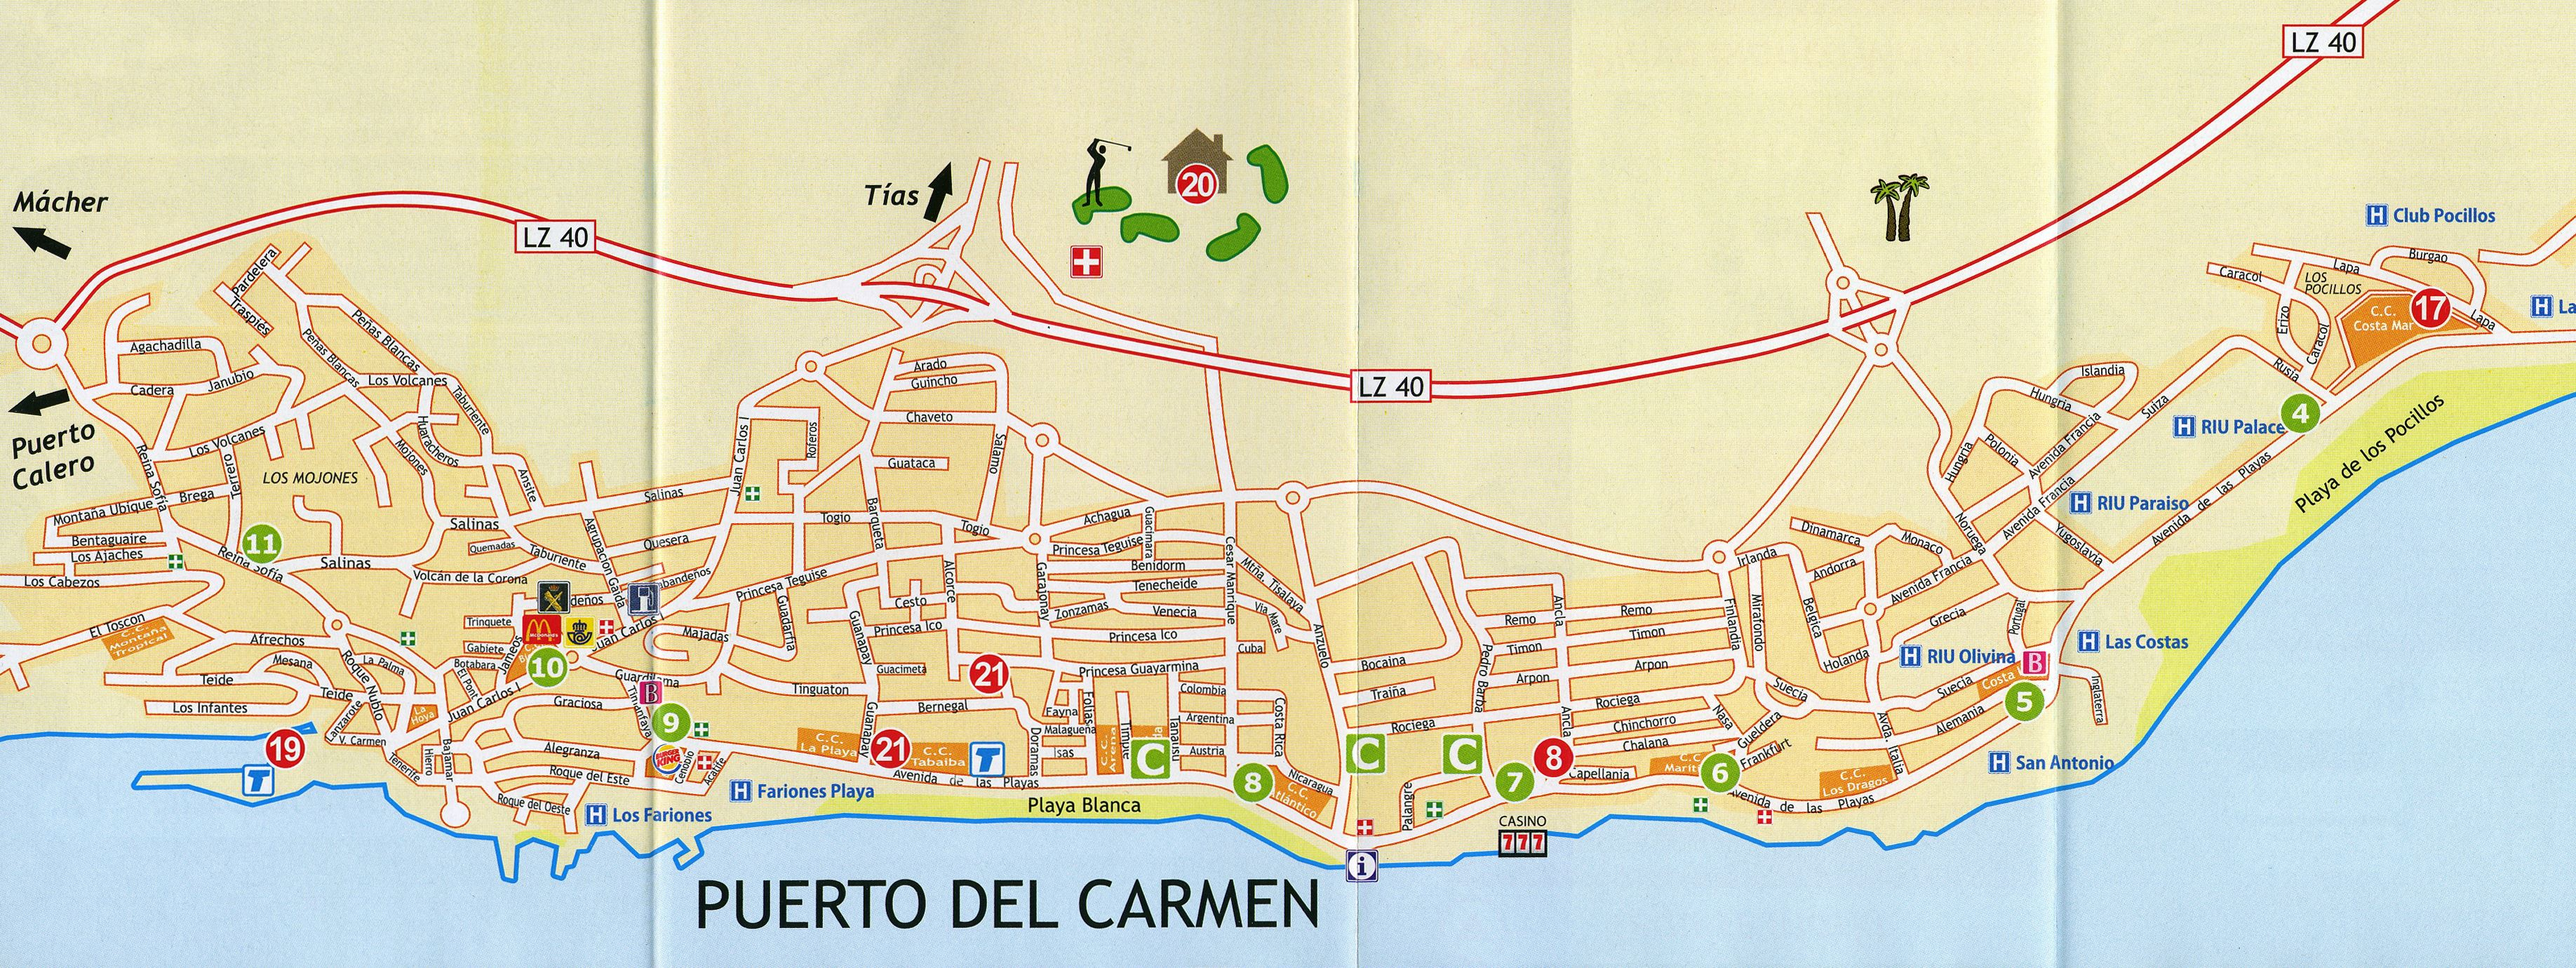 Puerto Del Carmen Map Large Puerto del Carmen Maps for Free Download and Print | High